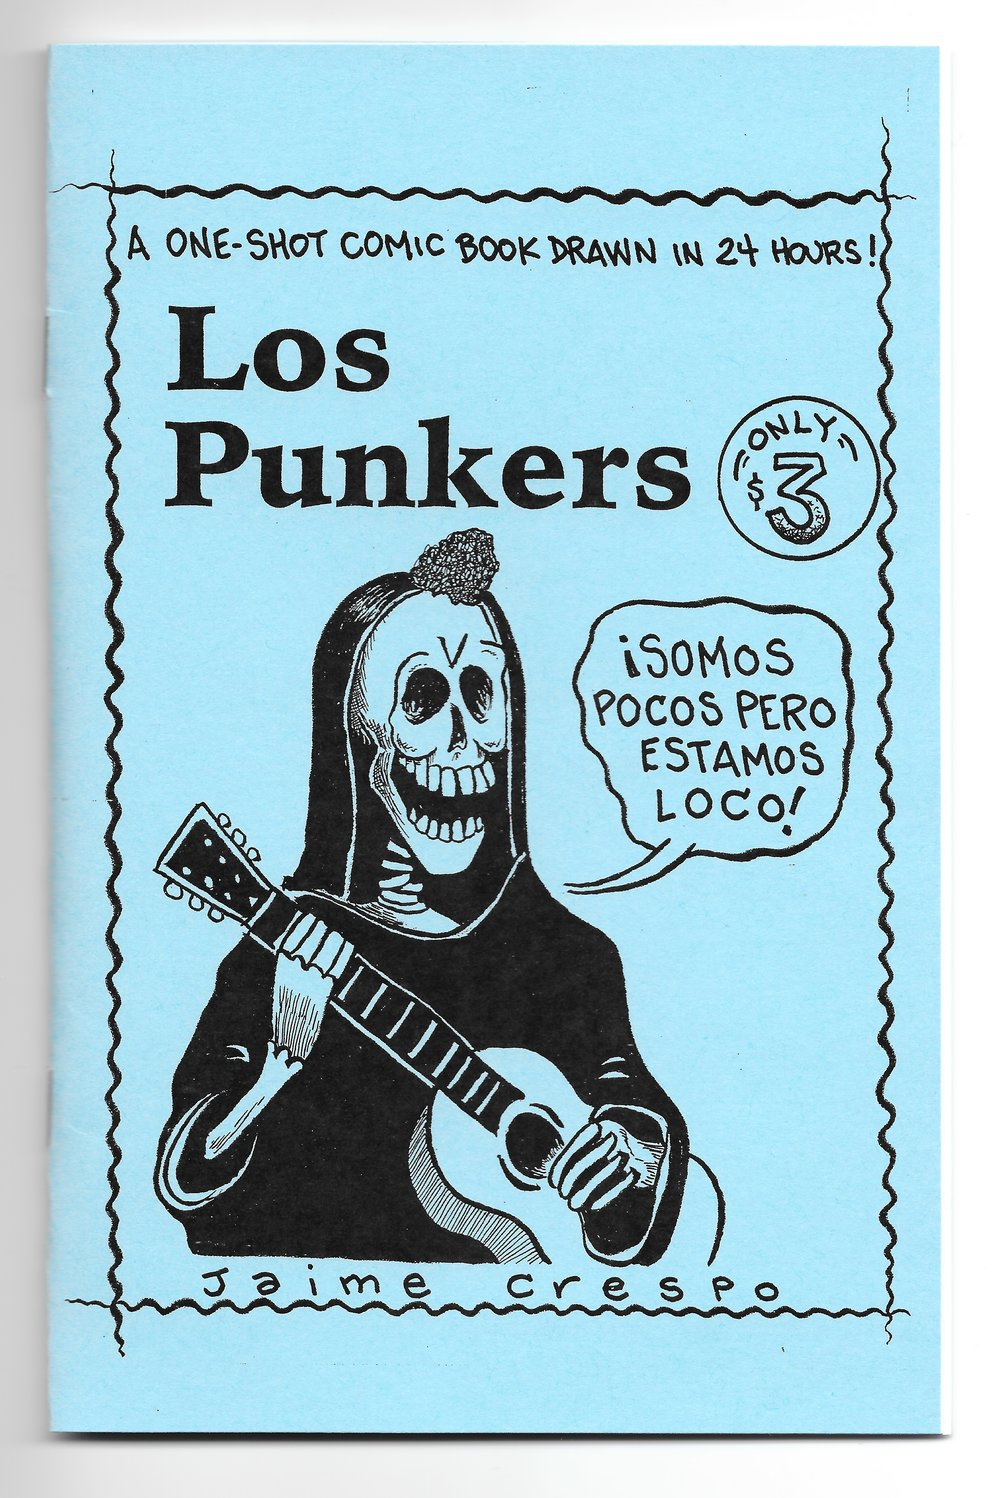 Los Punkers - Drawn about six/seven years ago at one of those 24 hour Comic Book events where you show up and have 24 hours to write, pencil and ink an entire 24 page comic book (minus the cover). I was at a loss on what to draw but managed to figure something out and complete the project in around 22 hours...I swear I'll never do that again. The story in this book takes place in the late 1970's when I was a junior in high school. My buddy and I decided to start a punk band which where we lived and the given time frame was practically unheard of...though that never stopped us from doing crazy stuff before, so... The bottom line of this story has to do with timing...and our timing was off by a few years. Digest size, card stock cover, 24 pages. $4.00 ppd.